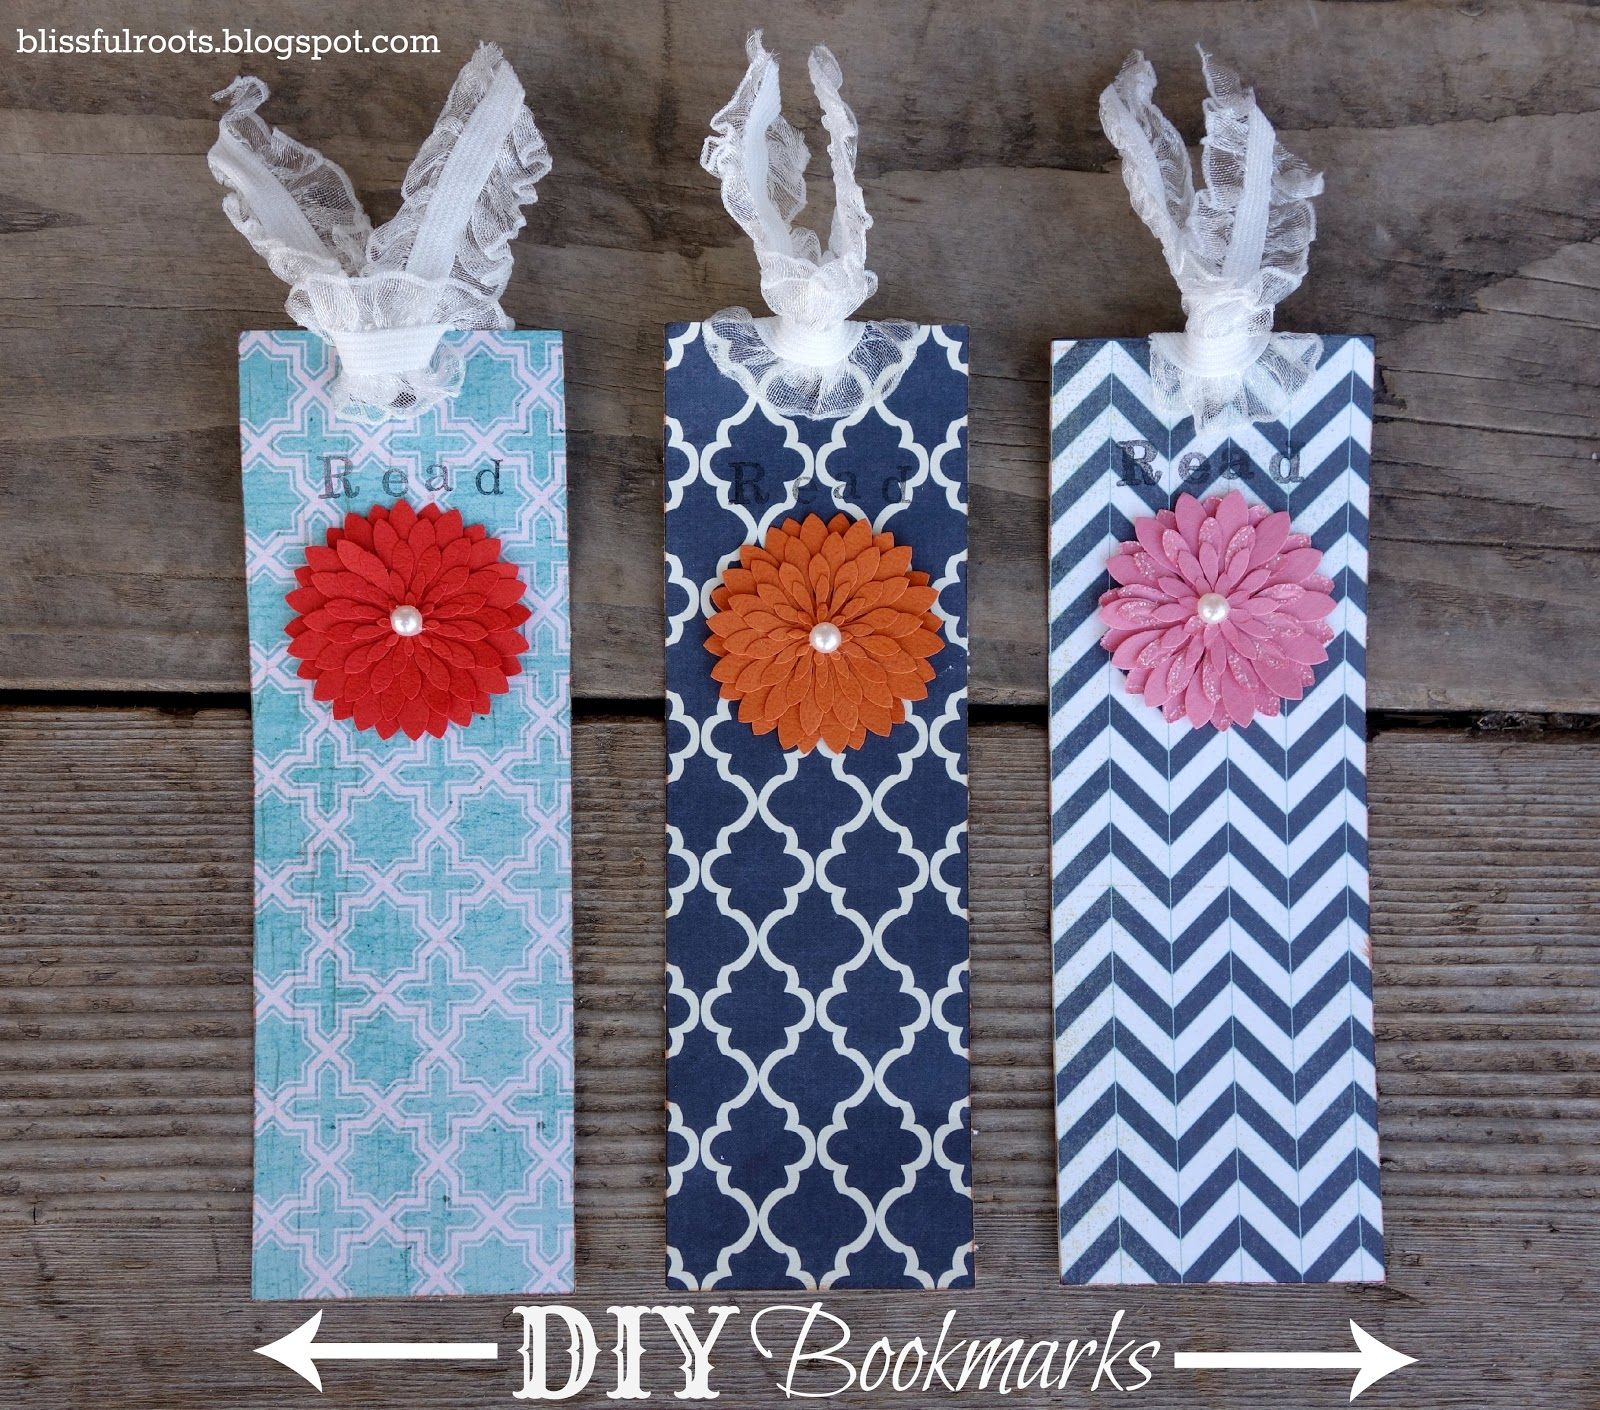 blissful roots diy bookmarks